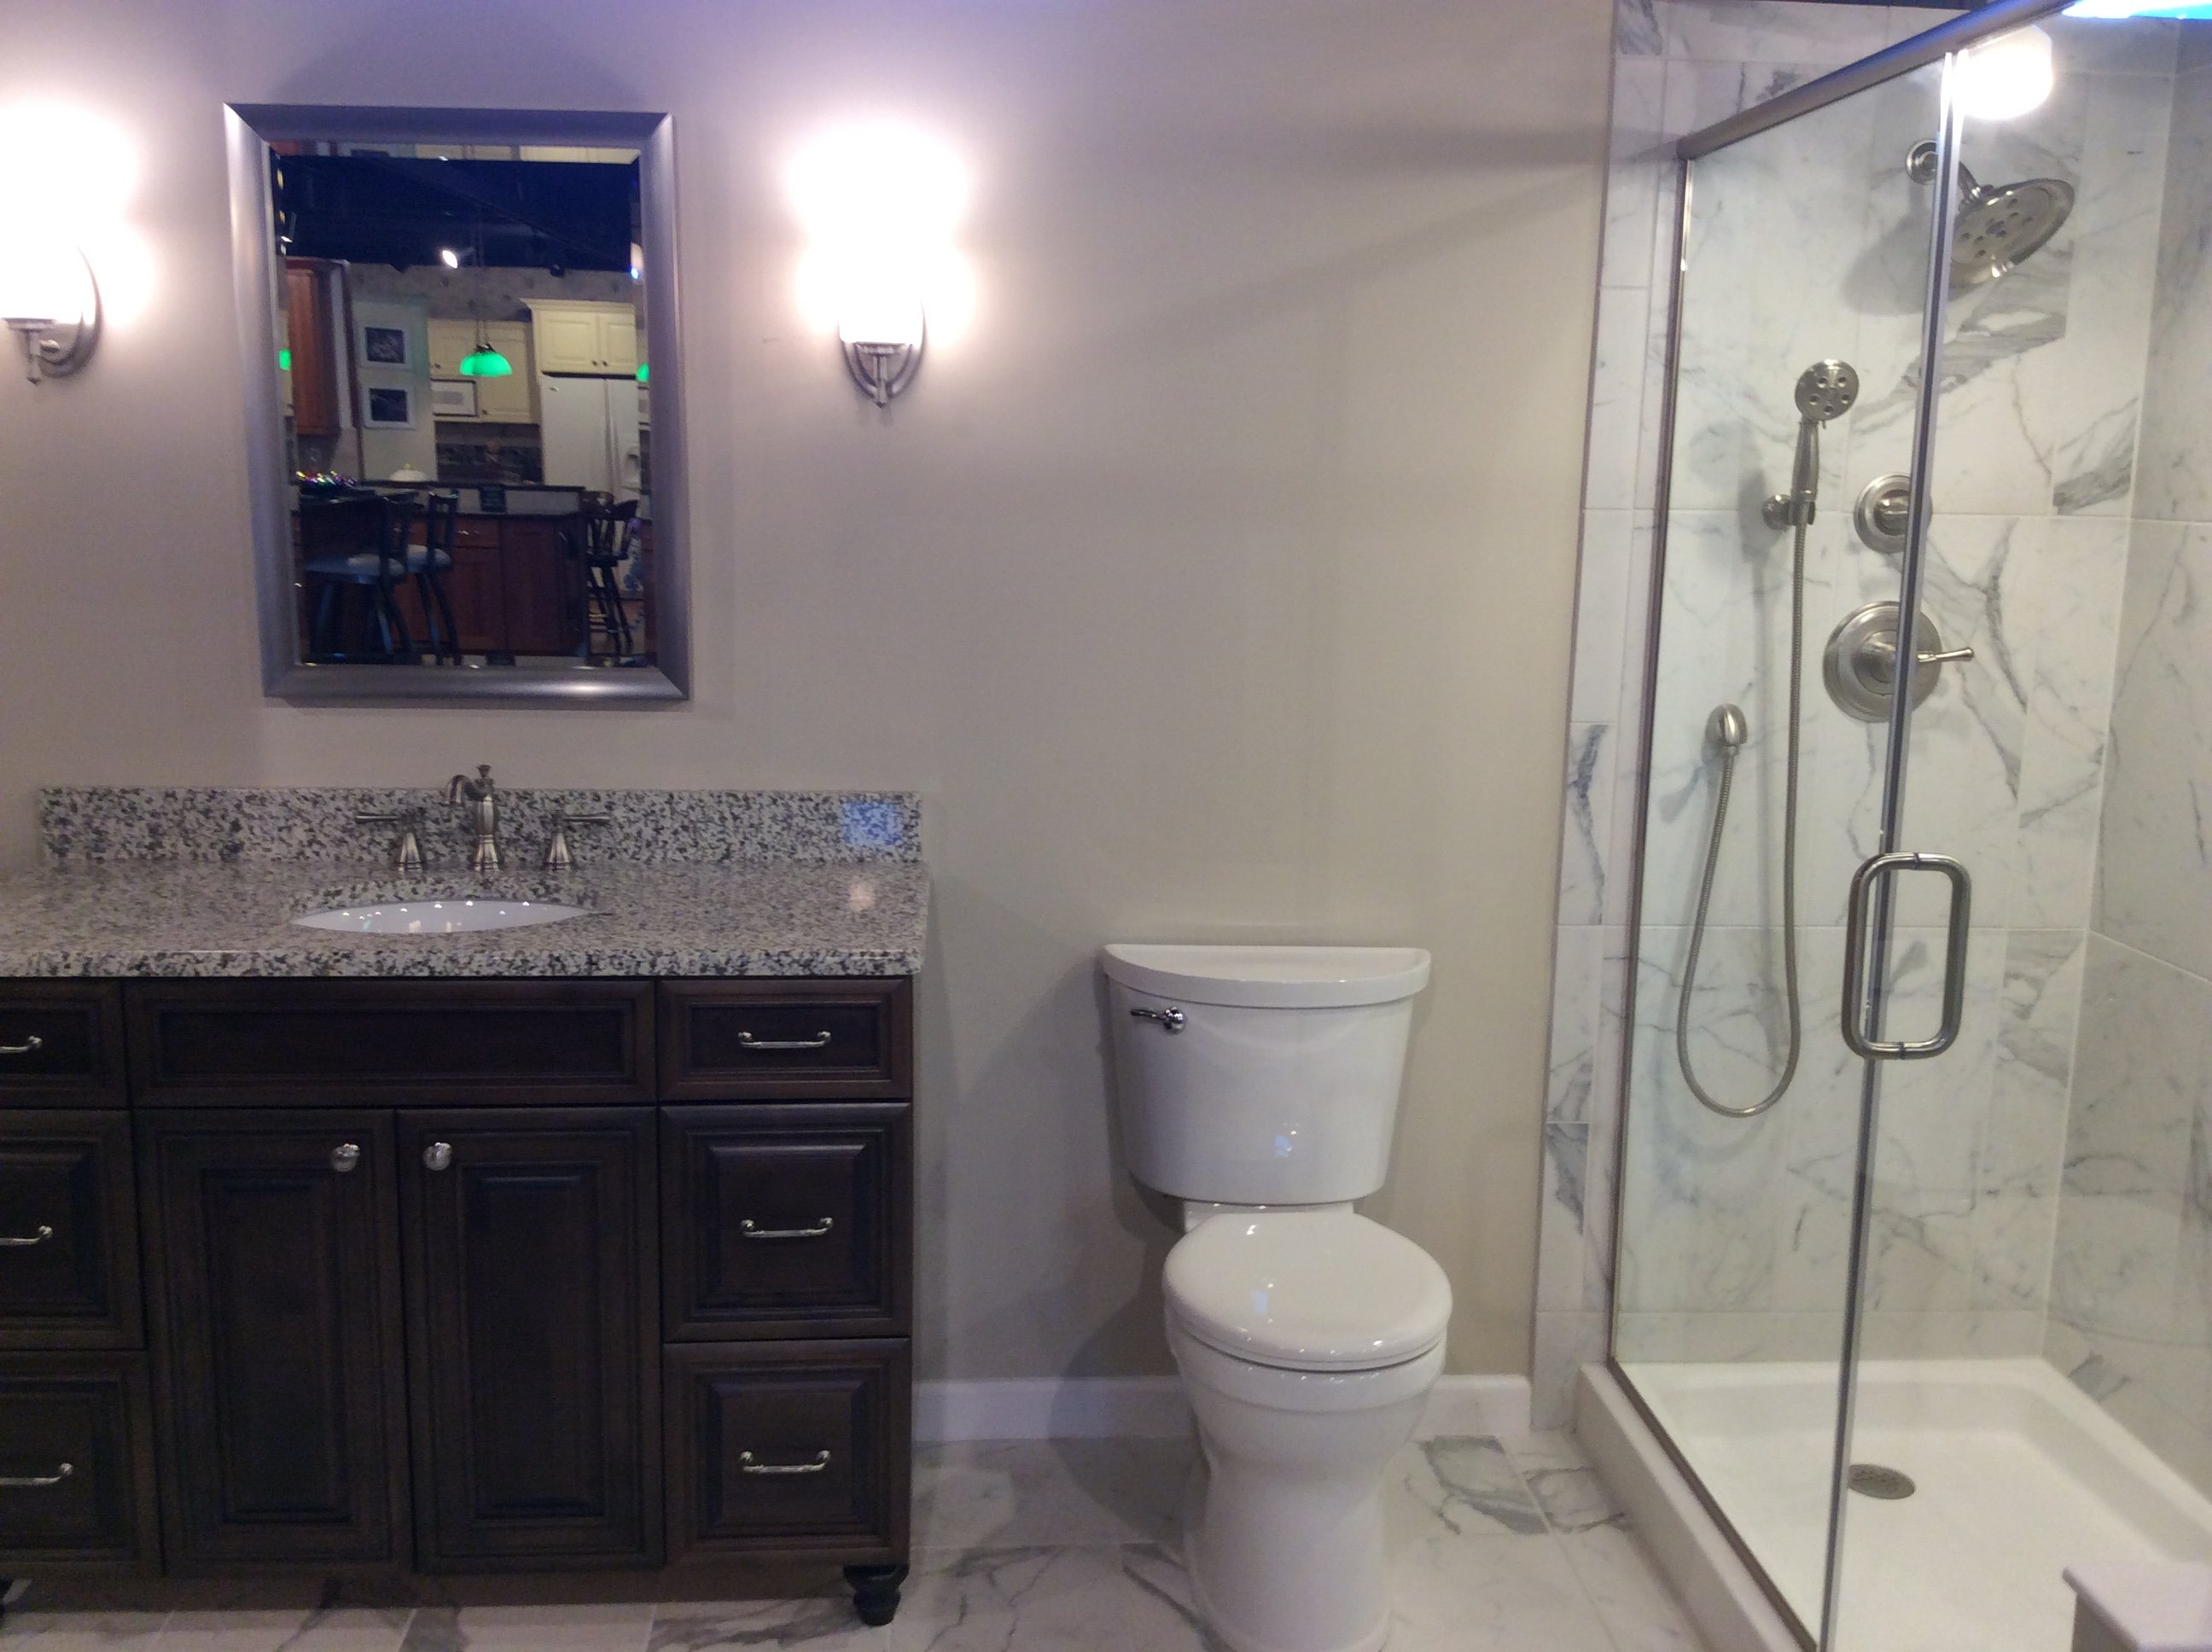 Patete Kitchen And Bath Design Center Photo Gallery